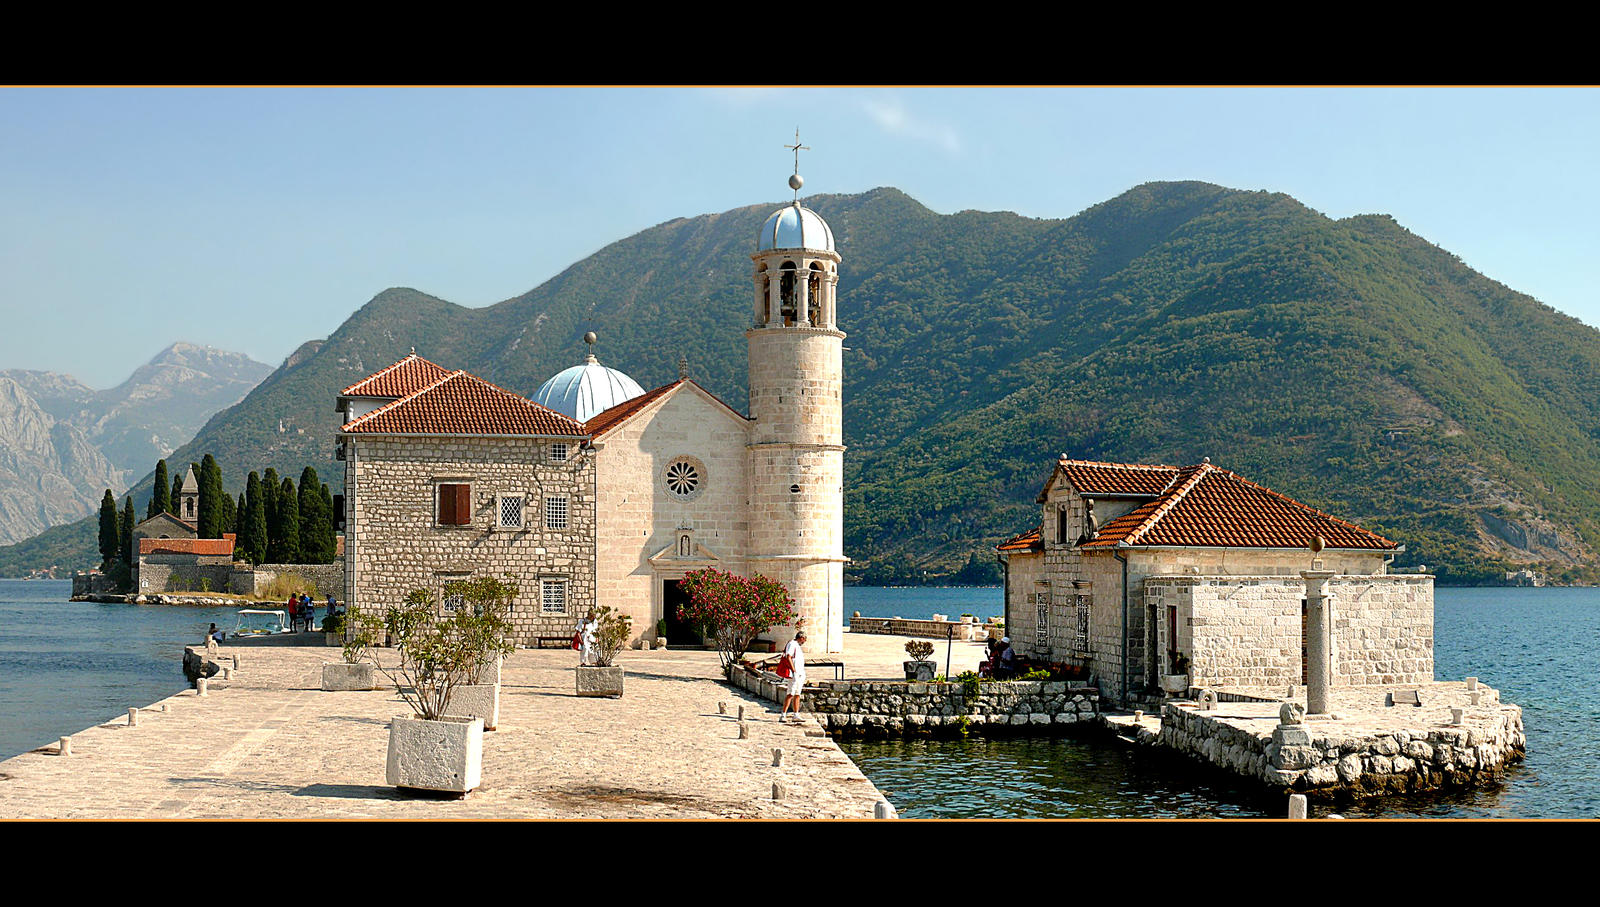 Church On Island On Kotor Bay by skarzynscy